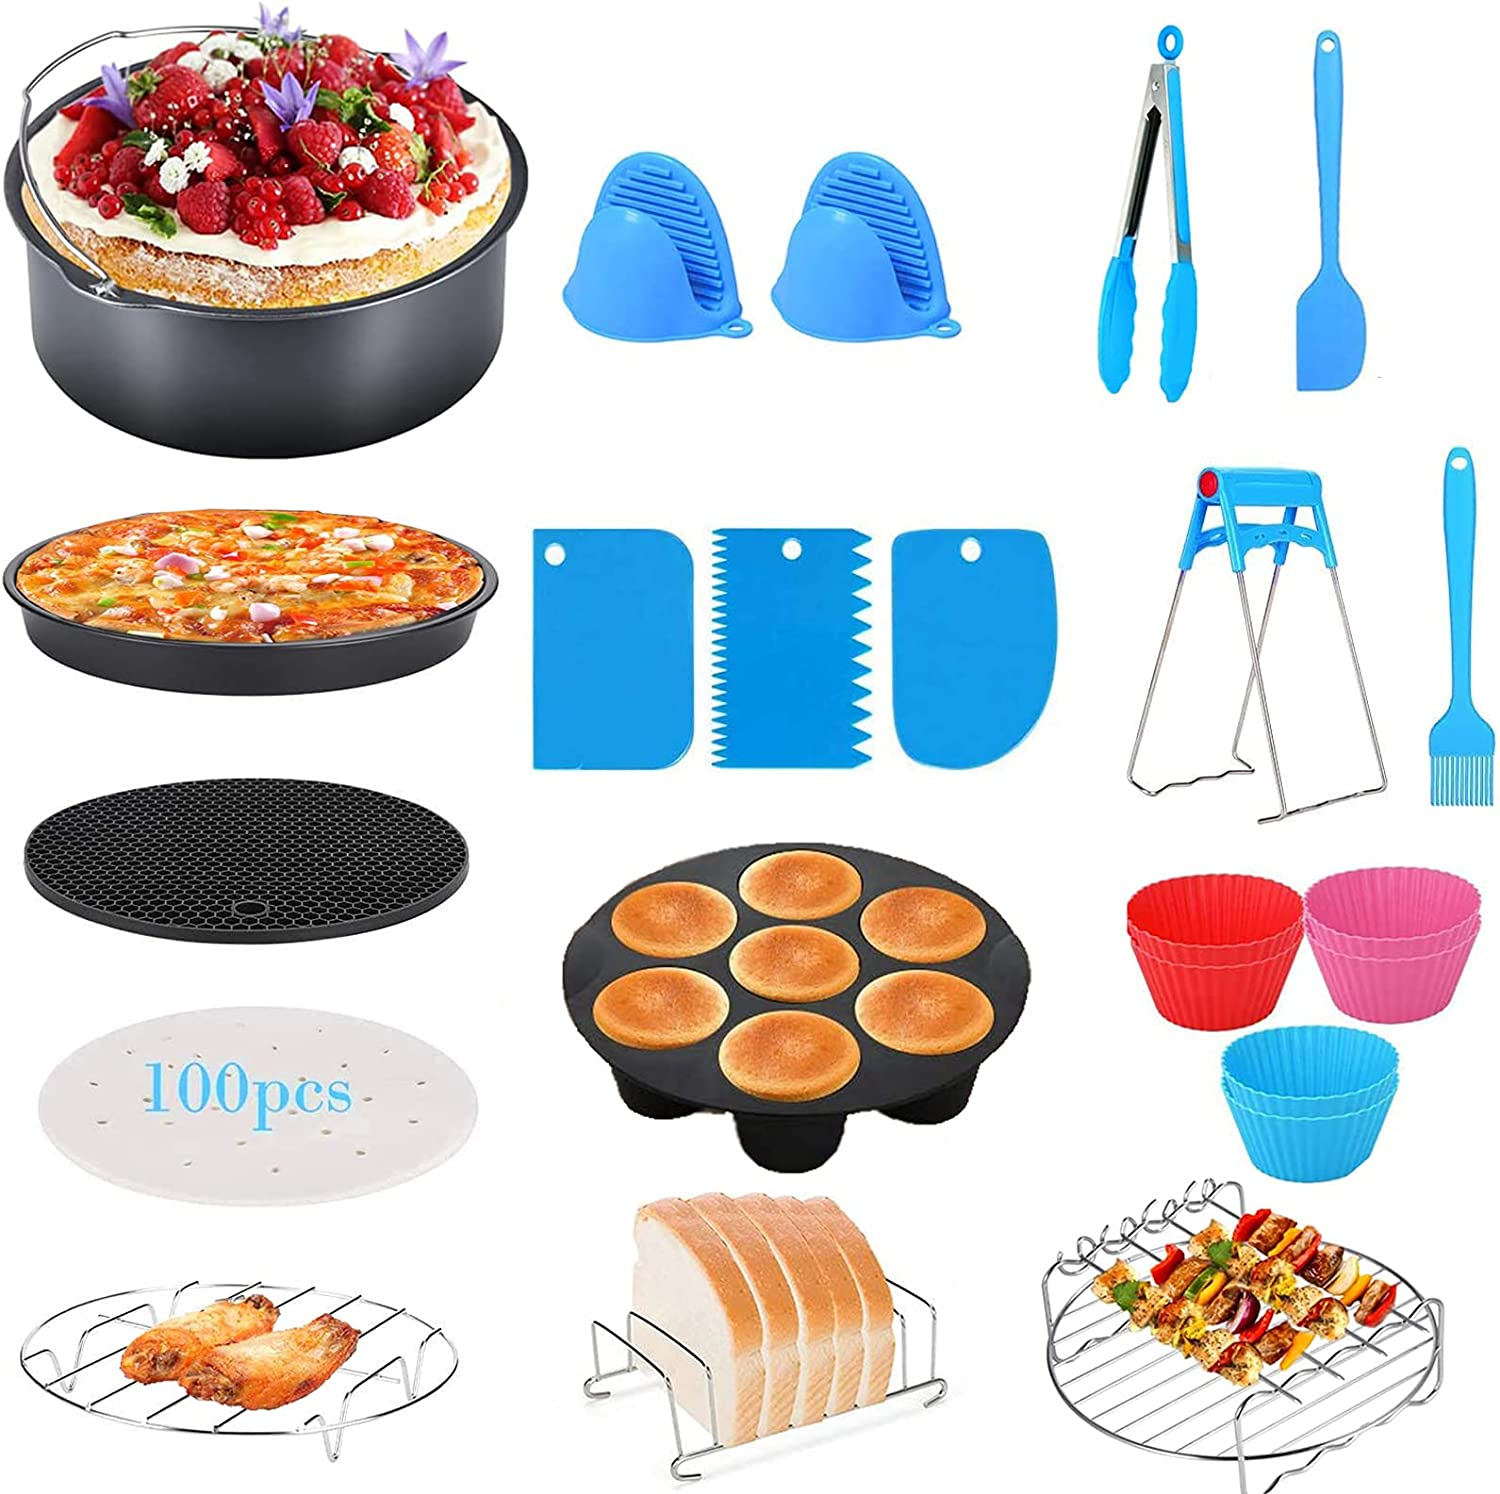 8 Inch Air Fryer Accessories XL,Set of 17 Deep Fryer Accessories with Pizza pan and Cake Barrel for Gowise Ninja Cosori Cozyna NuWave 4.2QT 5.3QT 5.5QT 5.8QT